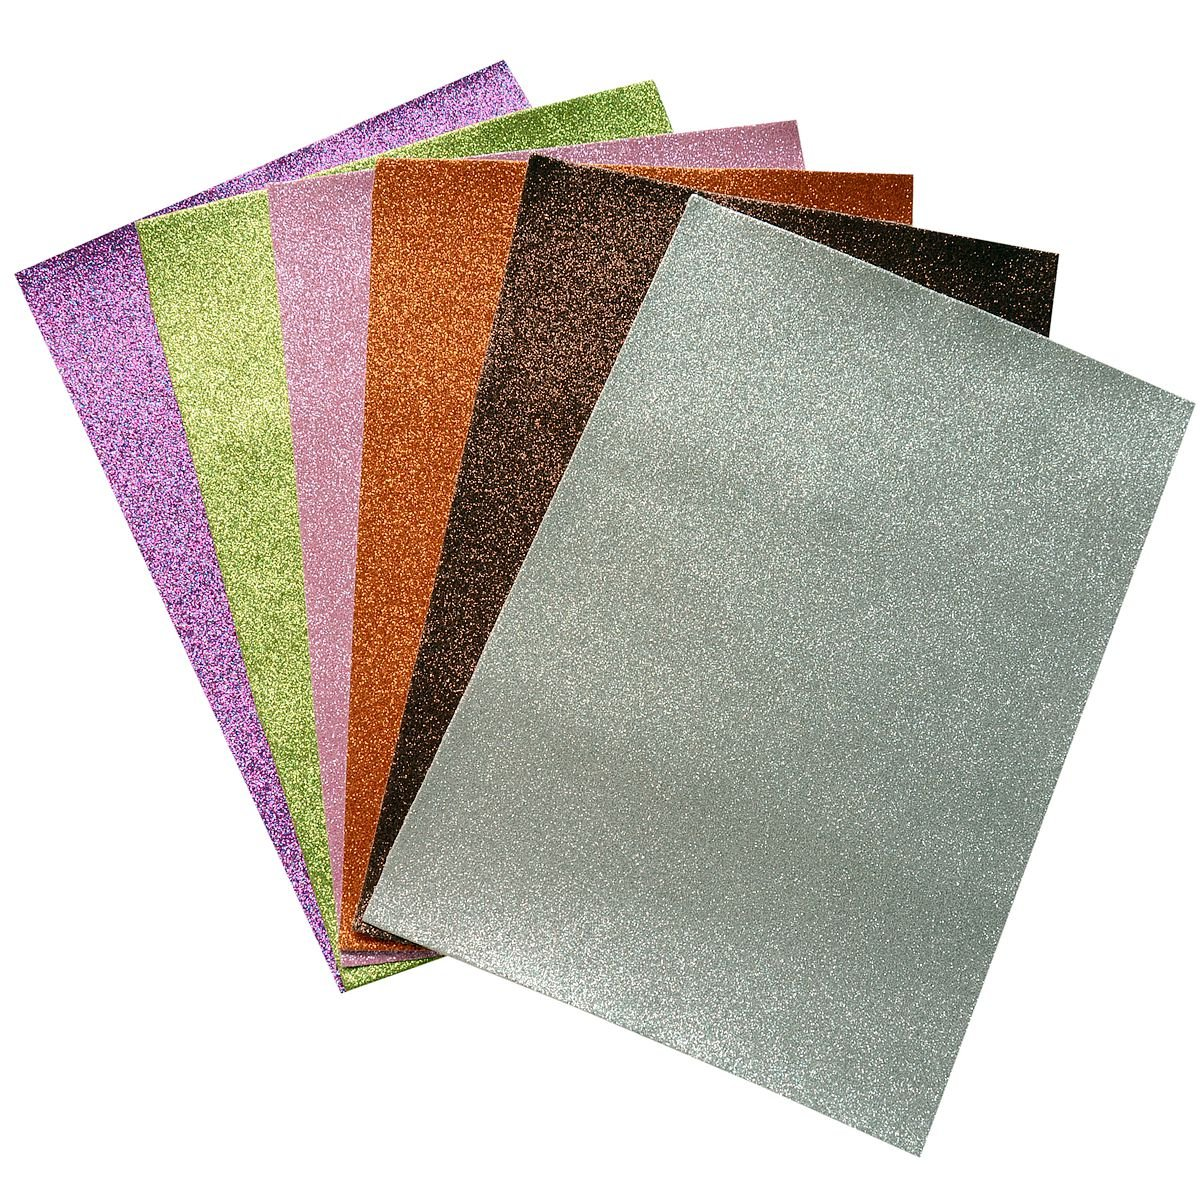 Glitter Faux Leather Fabric Sheets- 6 Pieces Assorted Colors A4 Size Precut Shiny Superfine Canvas Back for Bag Making, Hat Making, Hair Crafts Making, Jewelry Making, Sewing, Shoe Making Doublefire